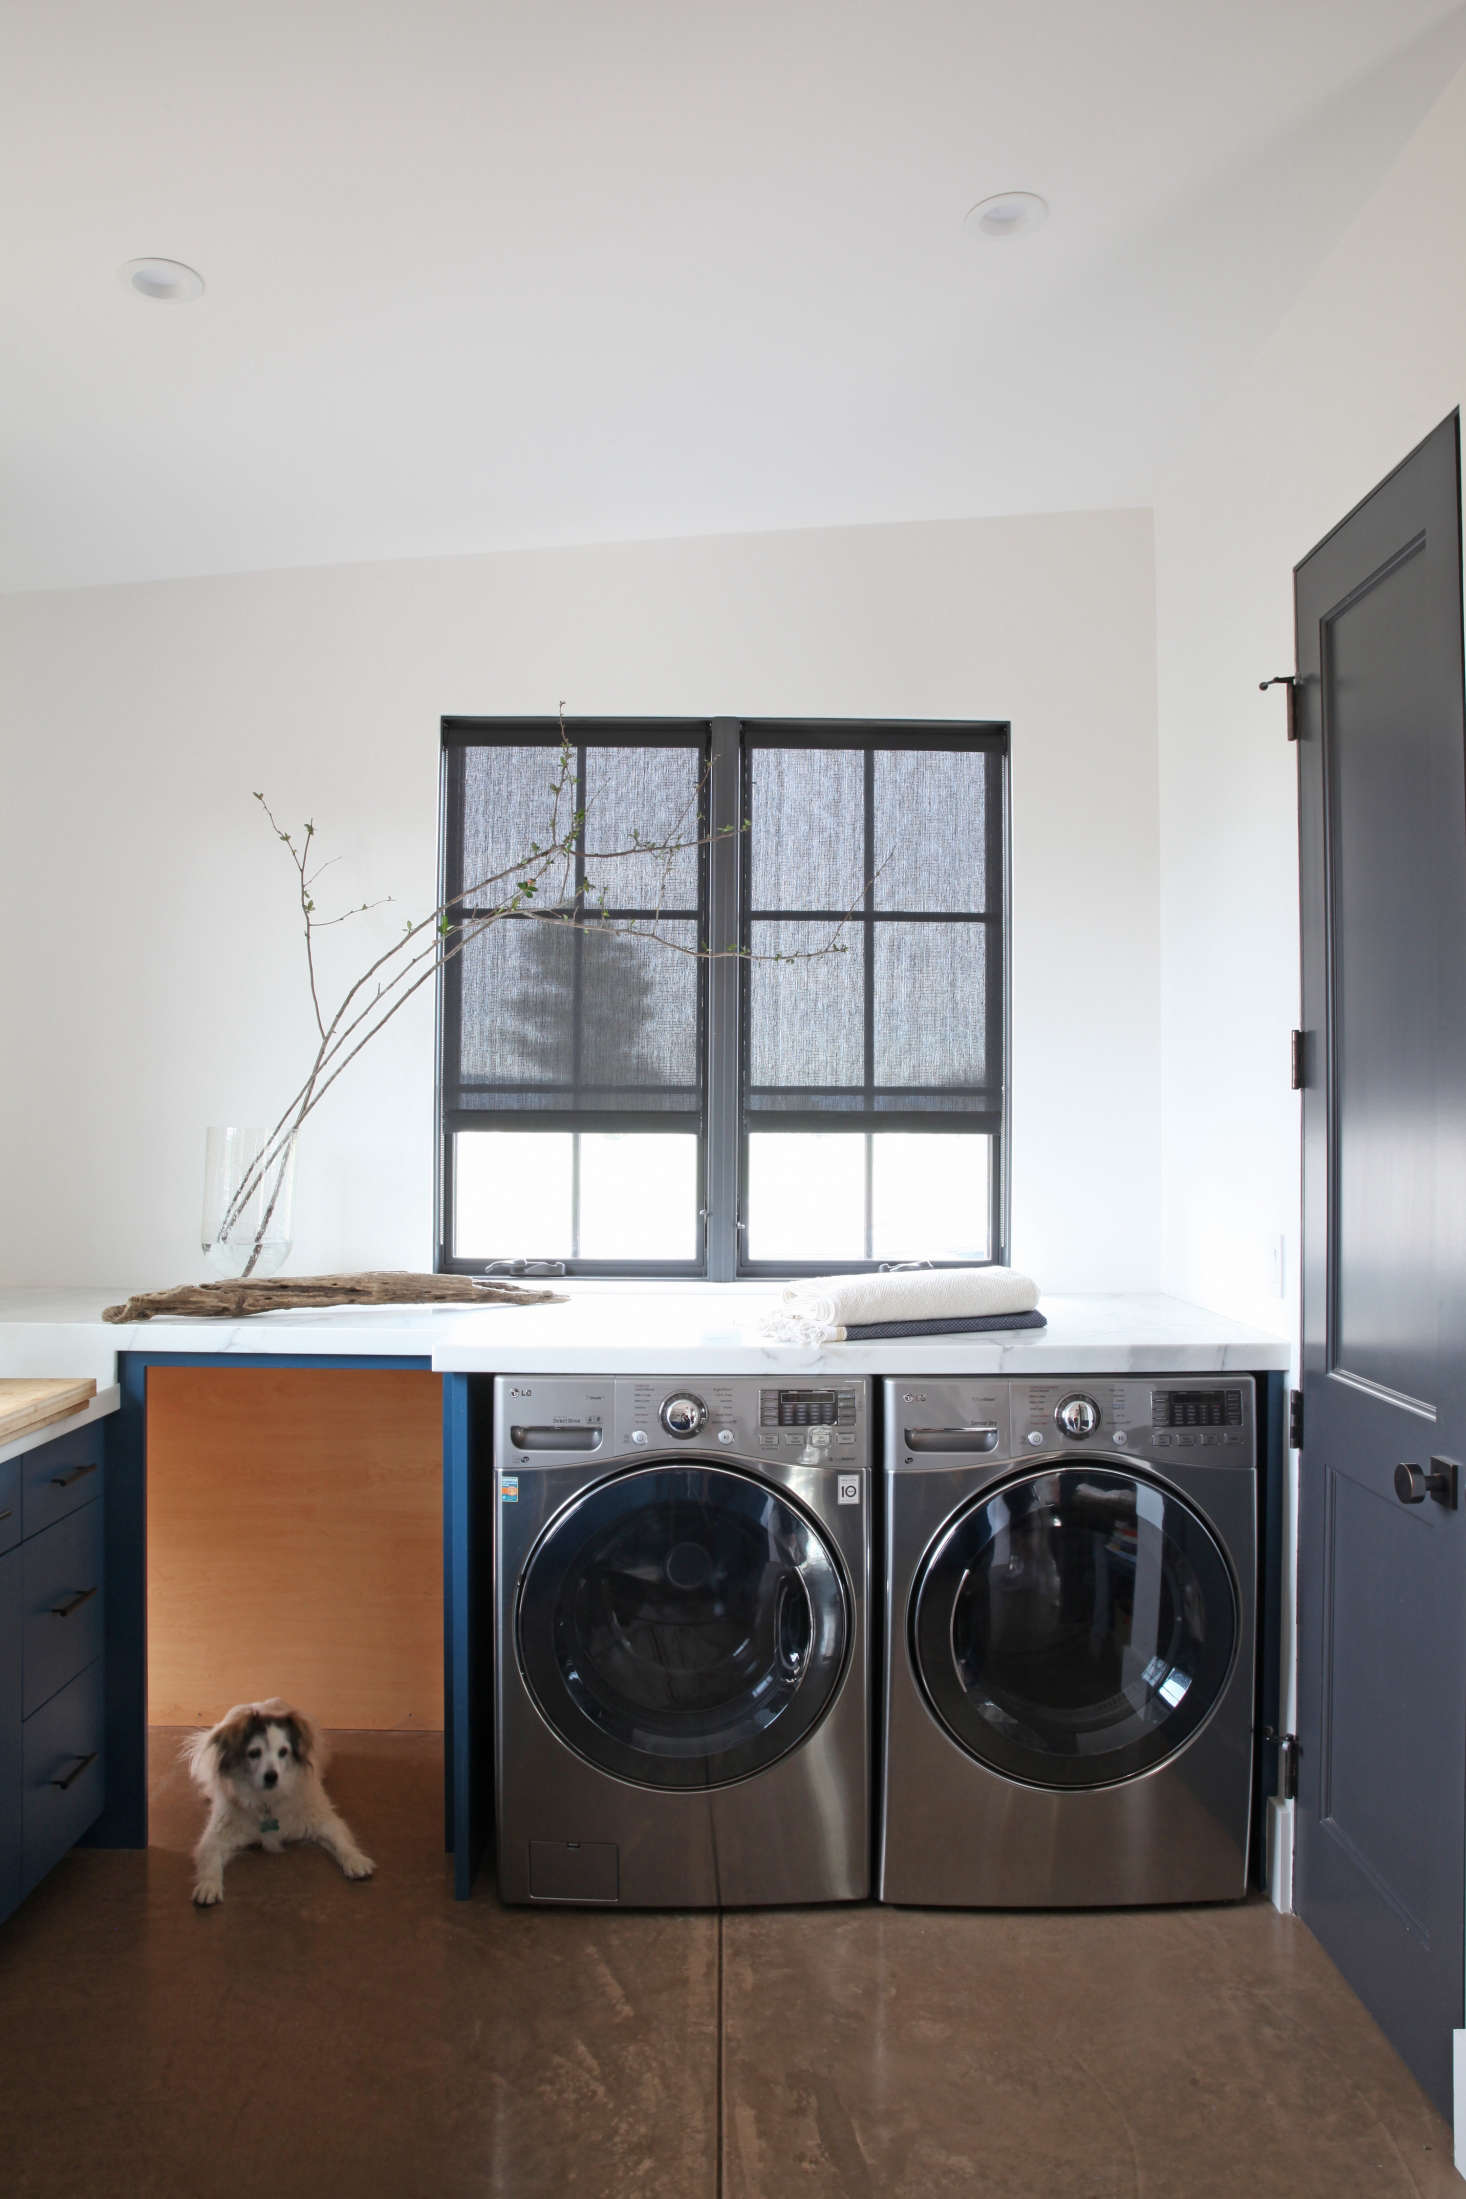 Dark gray roller shades paired with dark gray window frames in a laundry room featured in In California Wine Country, A Modern Farmhouse for a Brit and a Texan. Photograph by Karen Steffens for Remodelista.